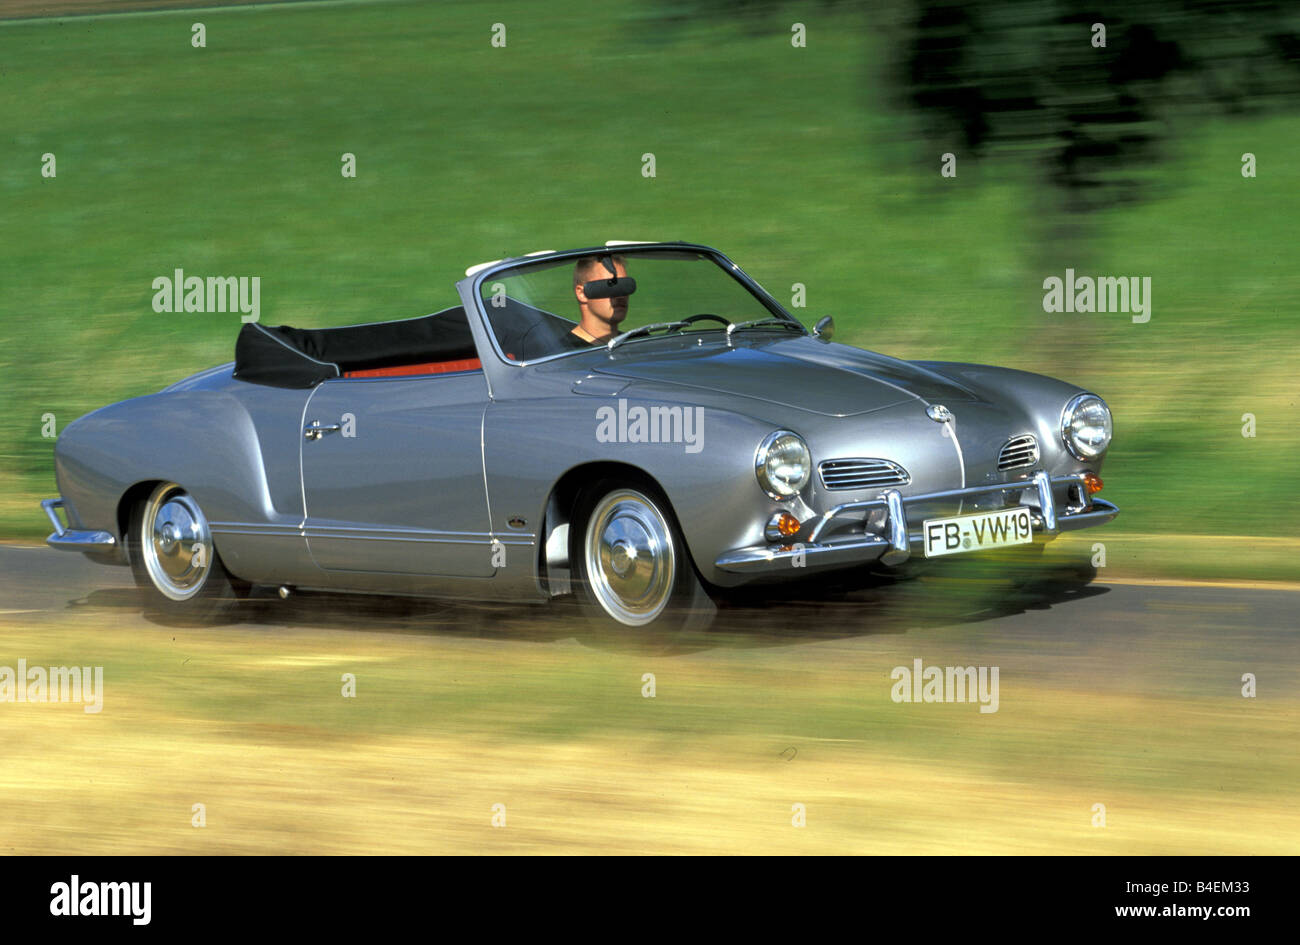 Car, VW, Volkswagen, Karmann Ghia Convertible, Model Year 1967, Silver,  Vintage Car, 1960s, Sixties, Convertible Top, Open, Dri